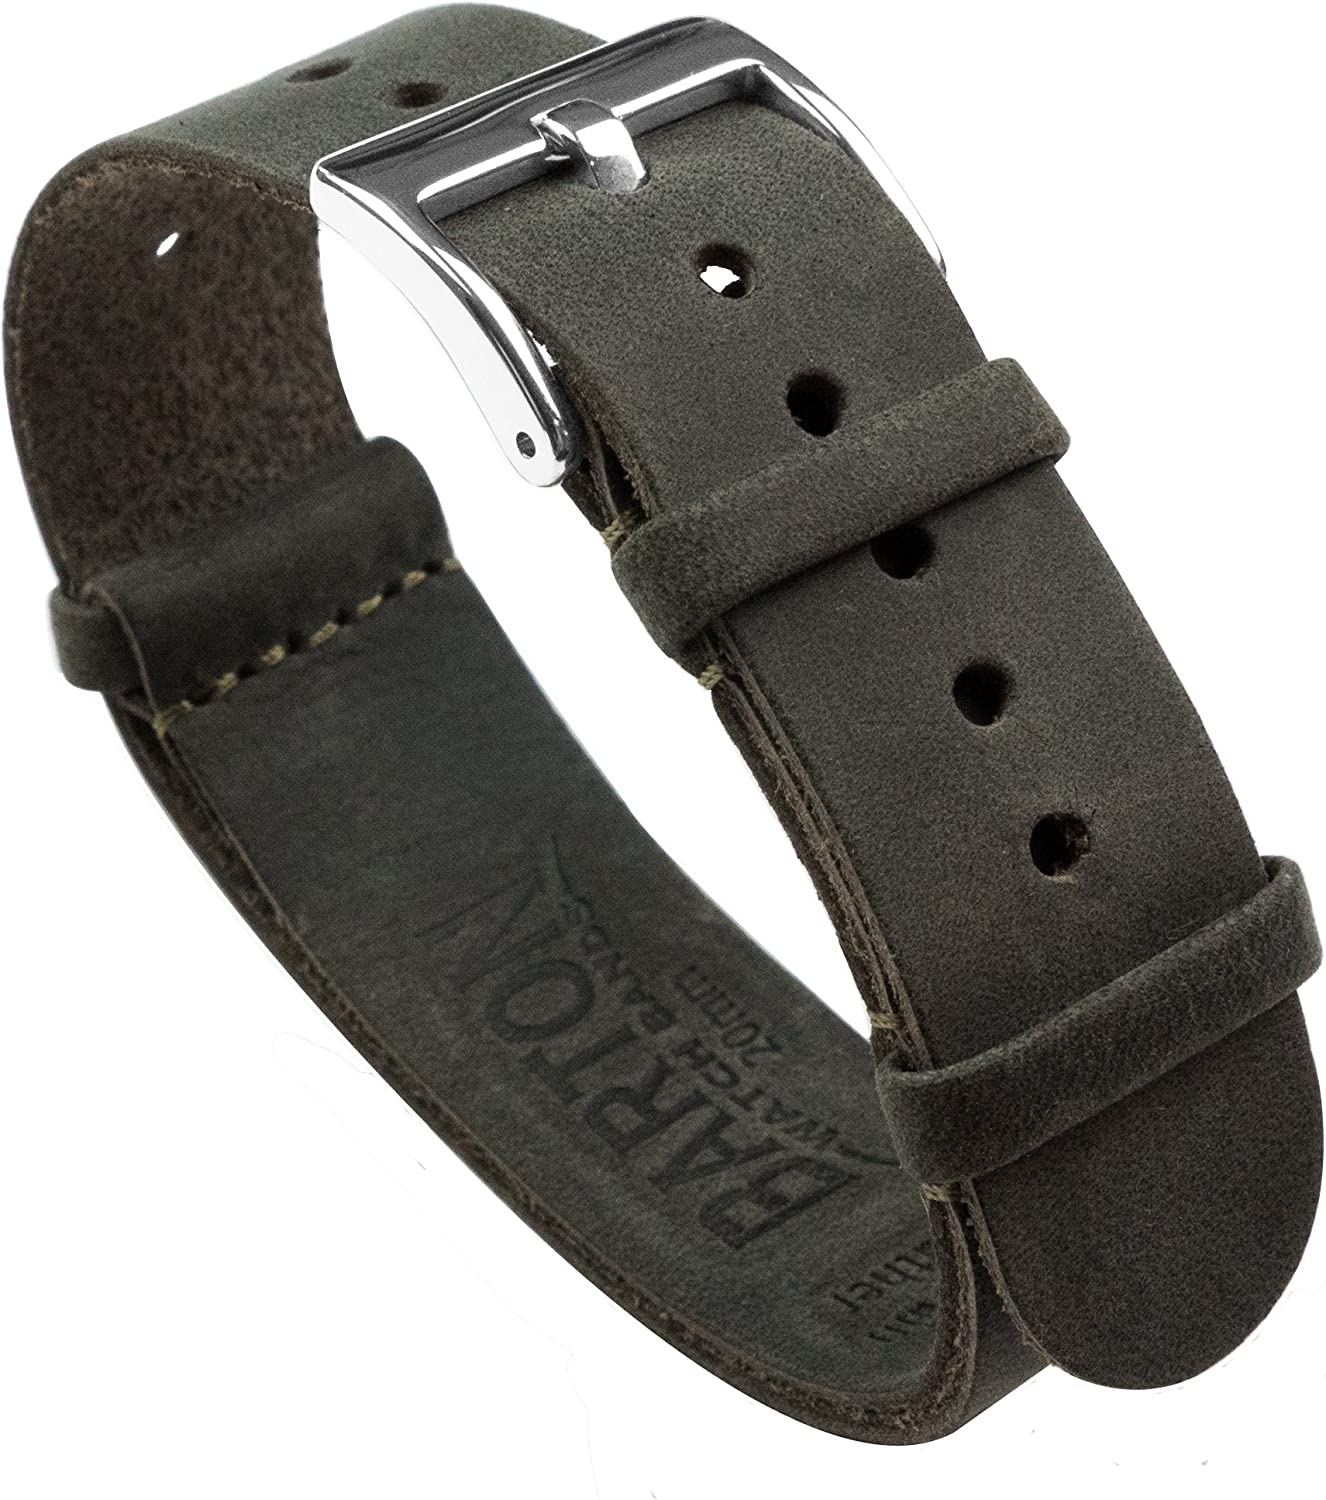 BARTON Leather Military Style Watch Straps - Choose Color, Length & Width - 18mm, 20mm, 22mm, 24mm Bands